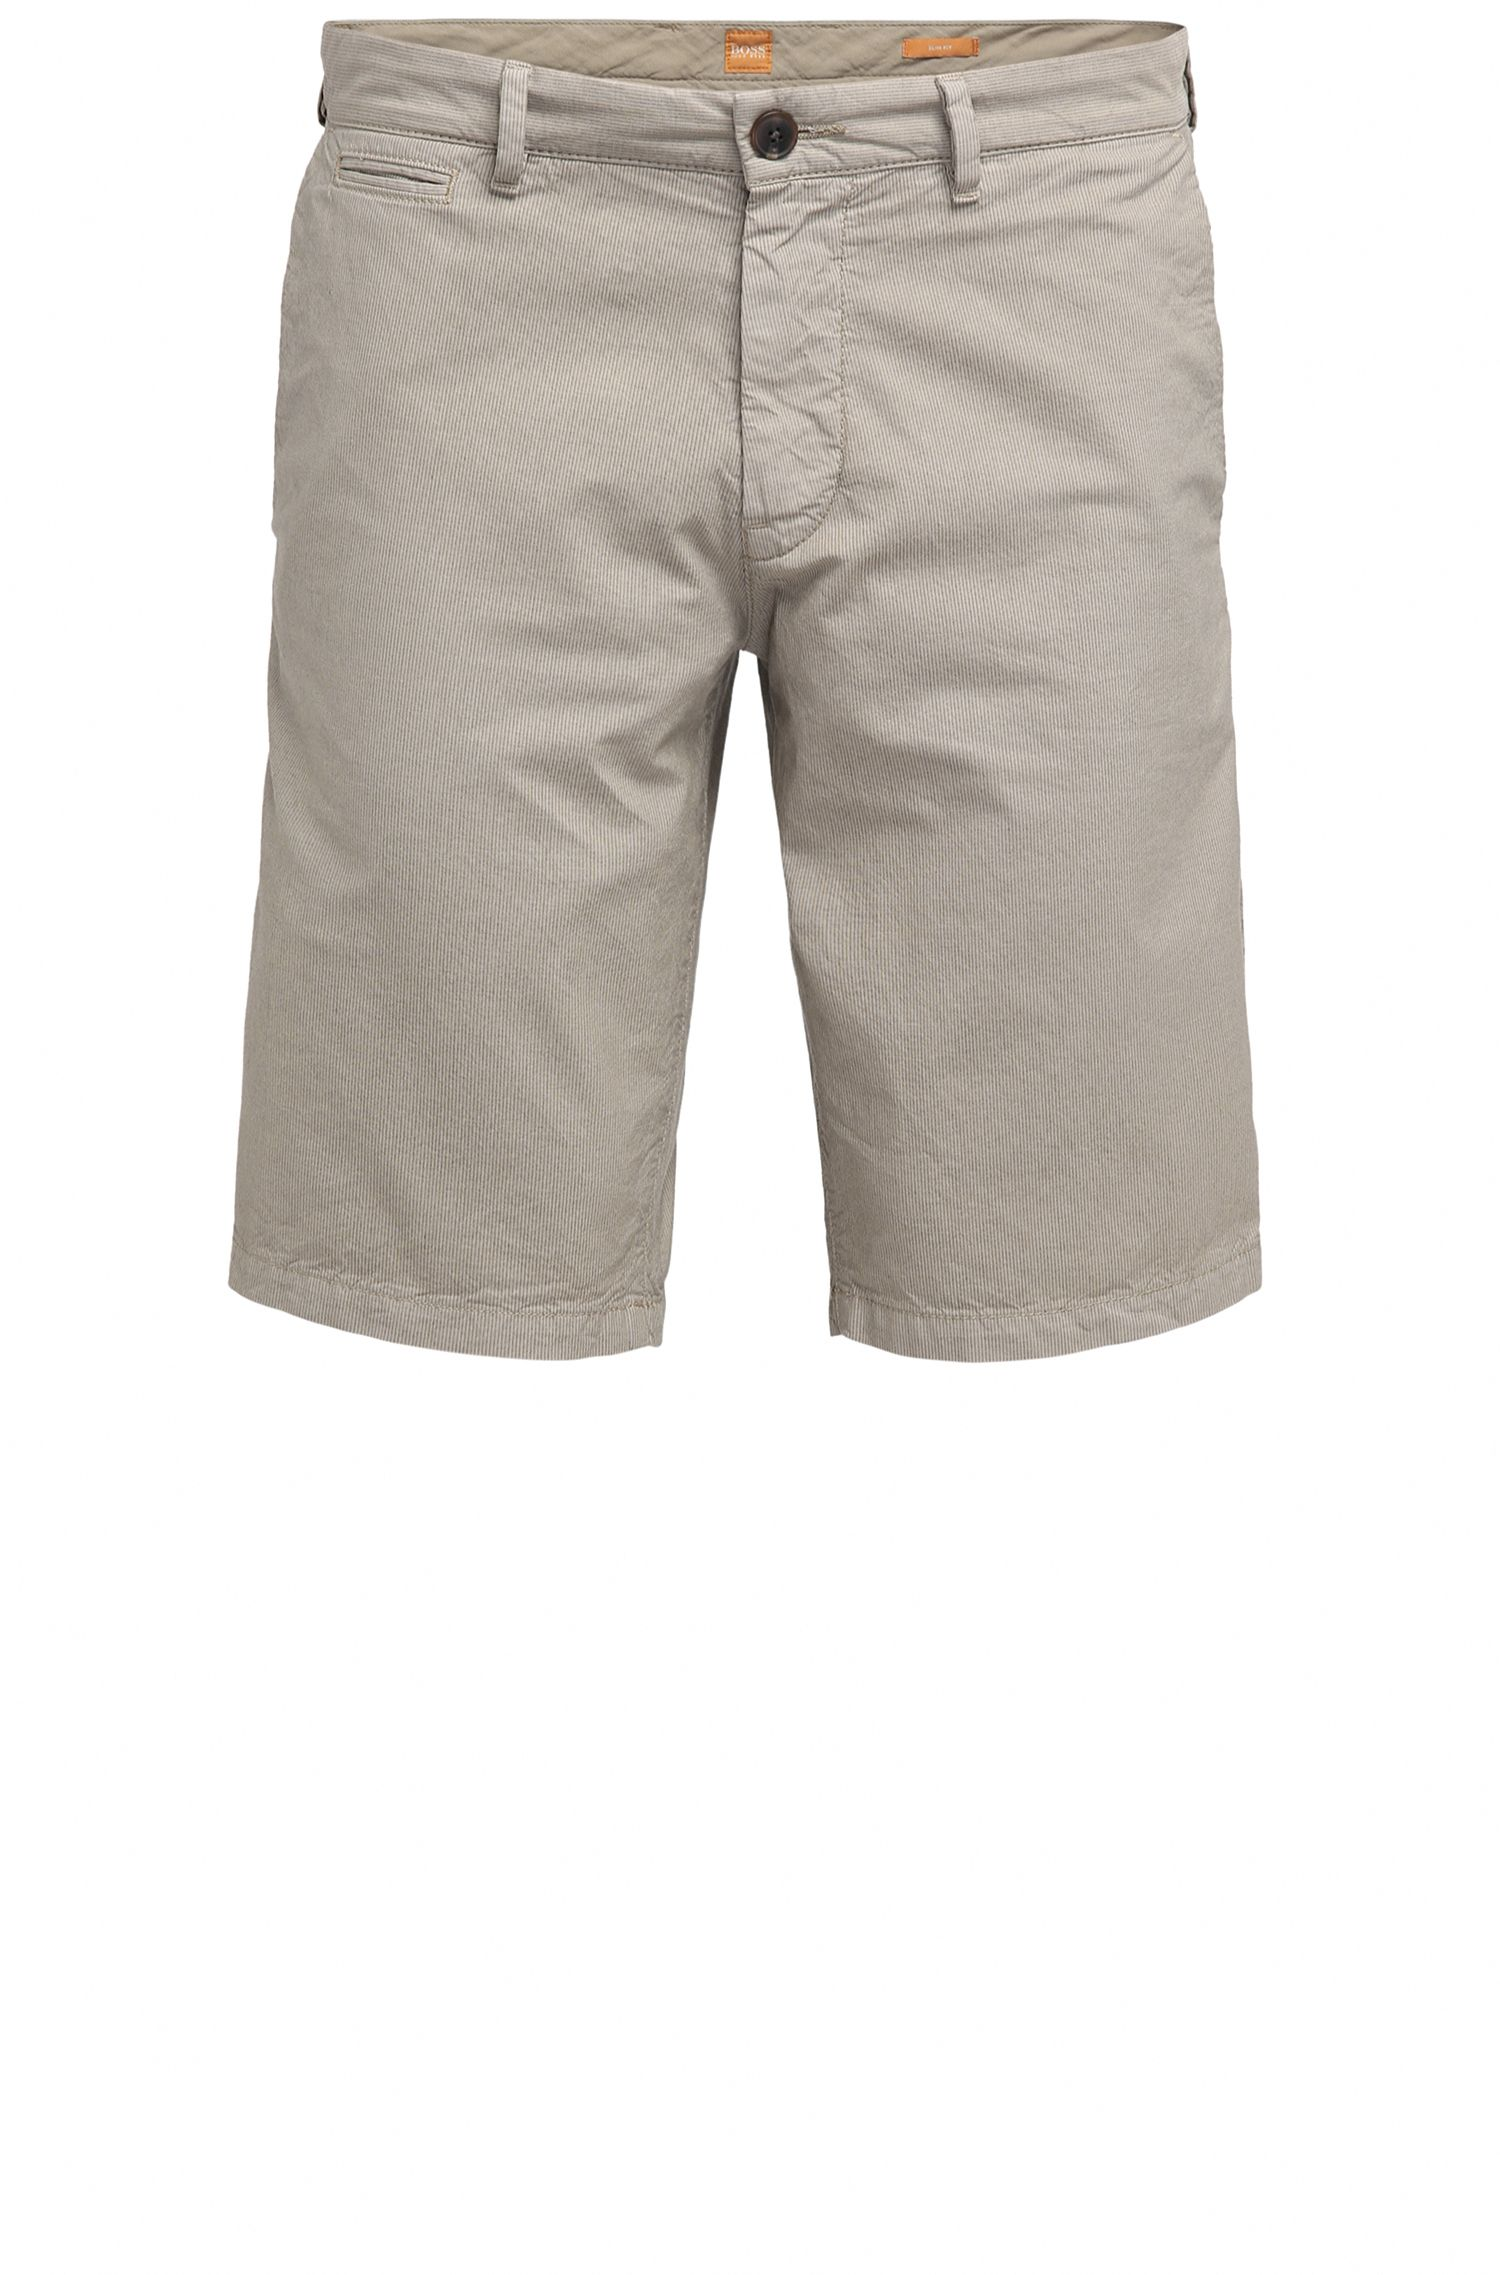 Slim-fit cotton shorts with concealed pockets